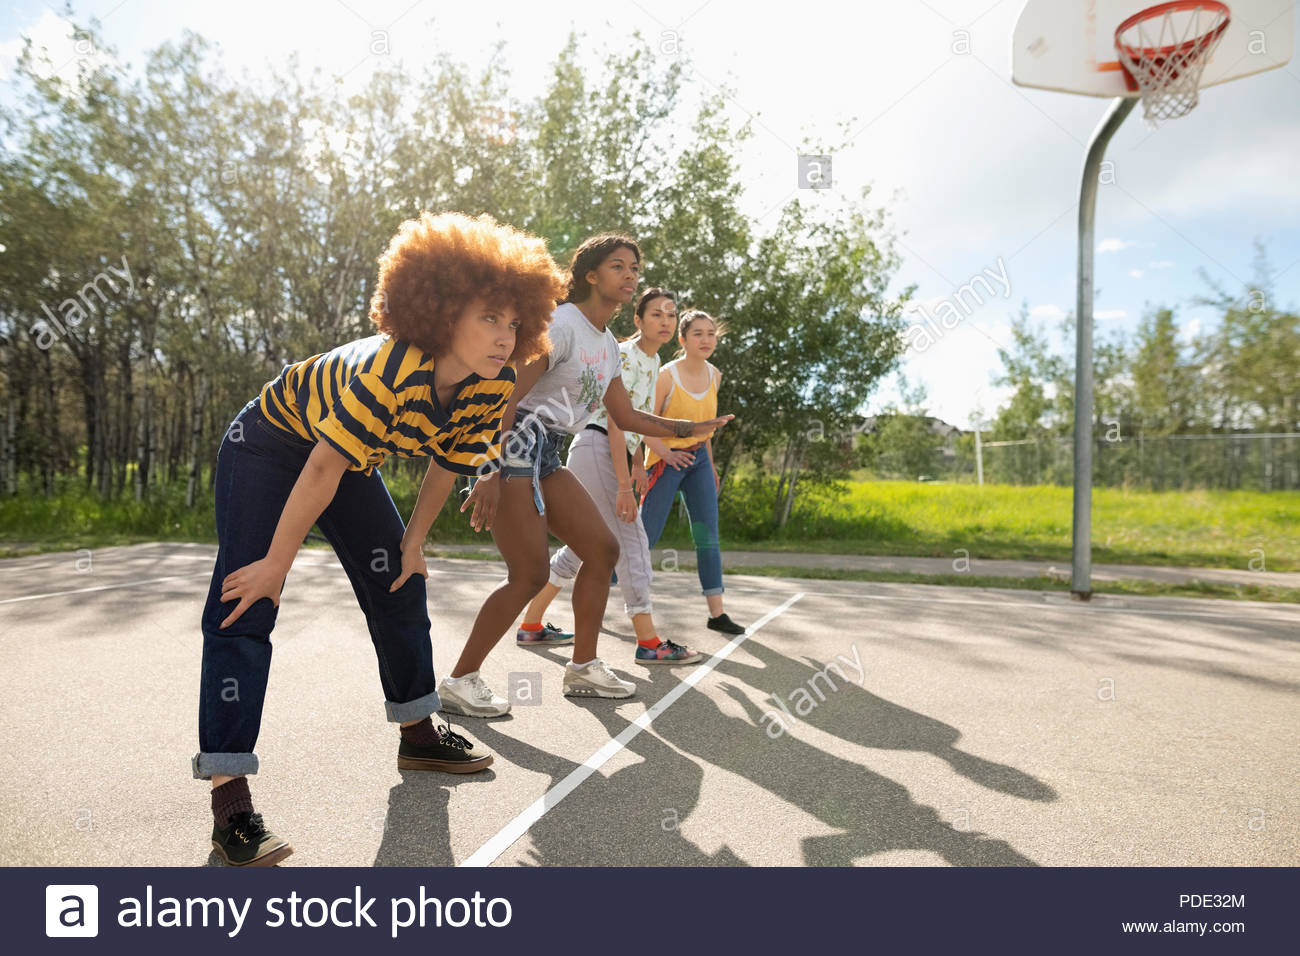 Teenage girl friends playing basketball at park basketball court - Stock Image